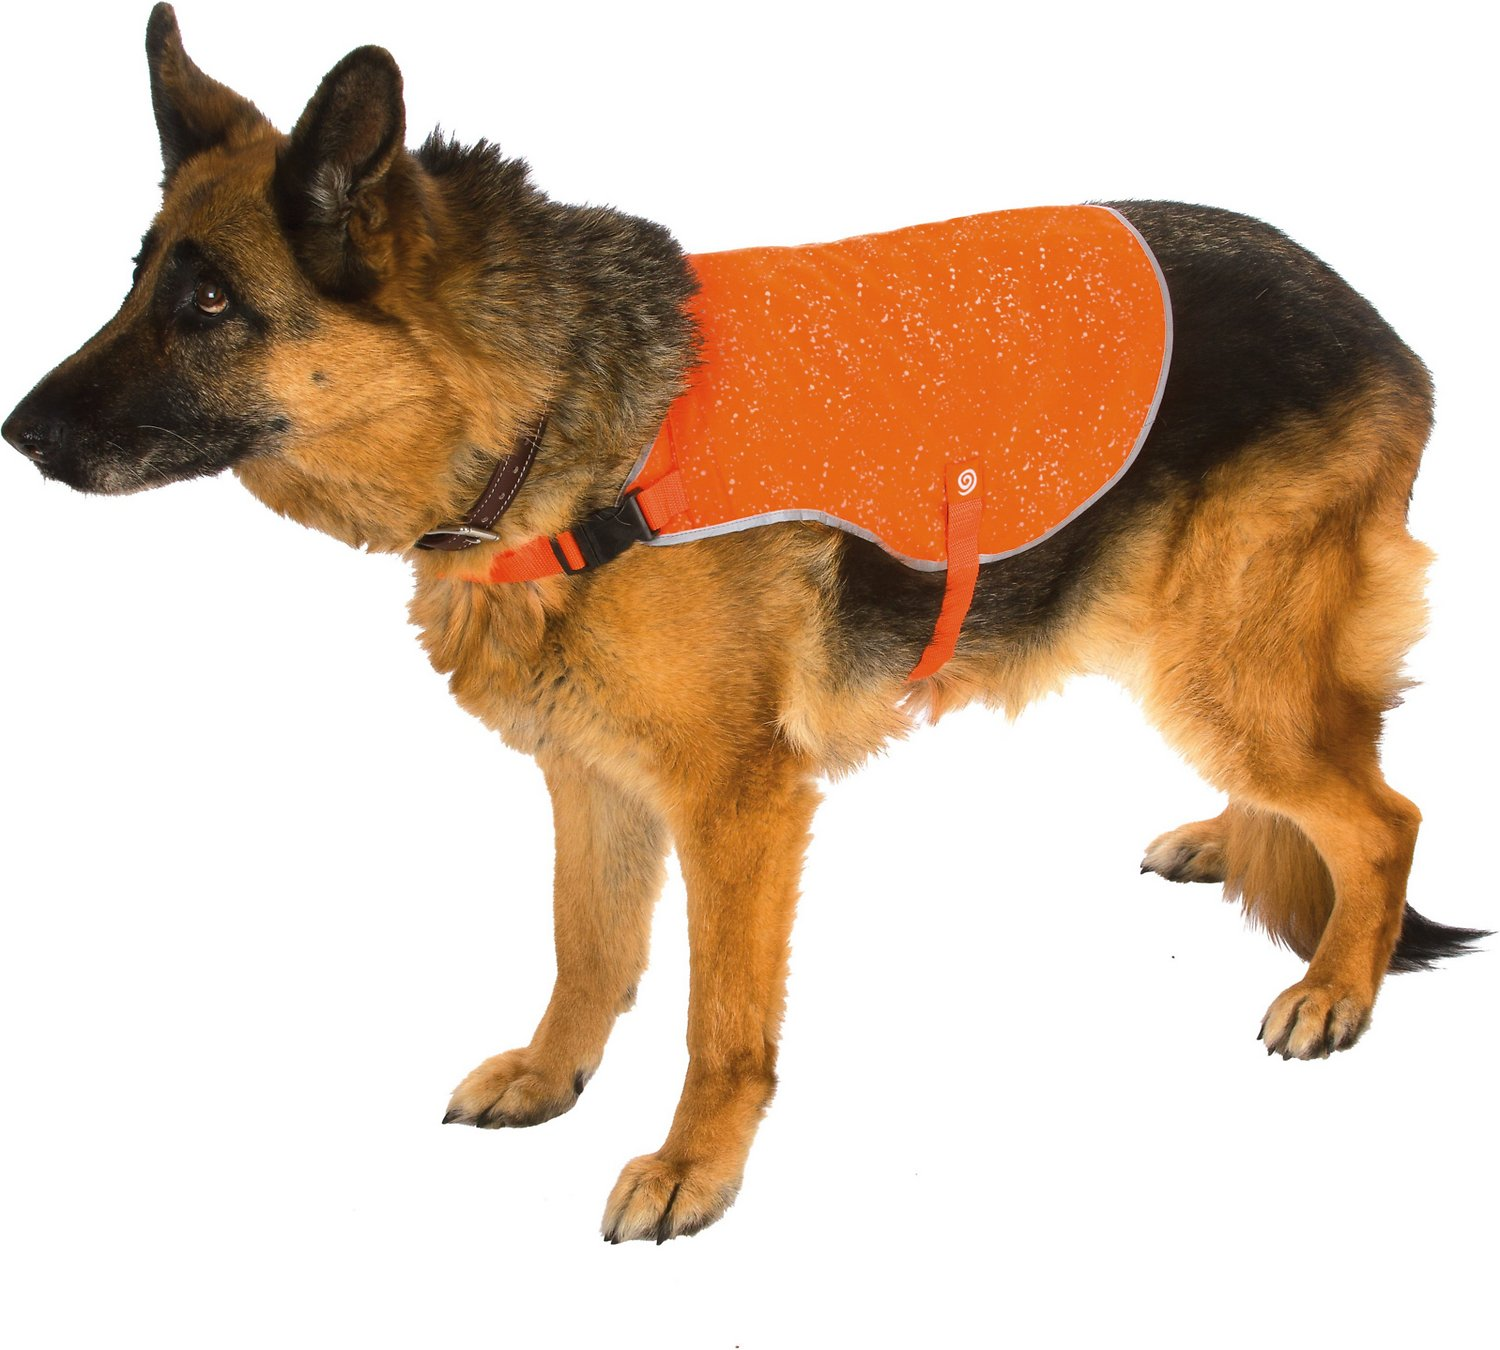 9f0e391d45d34 Ultra Paws Ultra-Reflective Safety Dog Vest, Small, Orange - Chewy.com